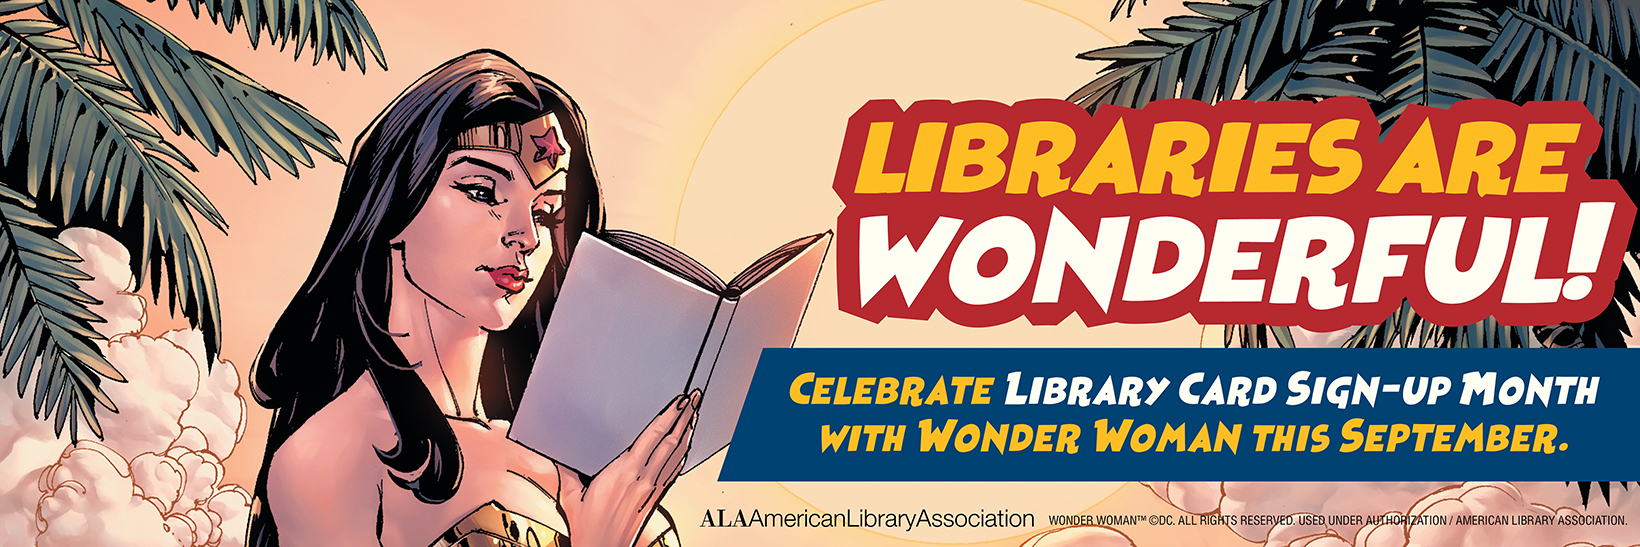 """LIBRARIES ARE WONDERFUL"" Celebrate Library Card Sign-Up Month with Wonder Woman this September! image of Wonder Woman reading a book"